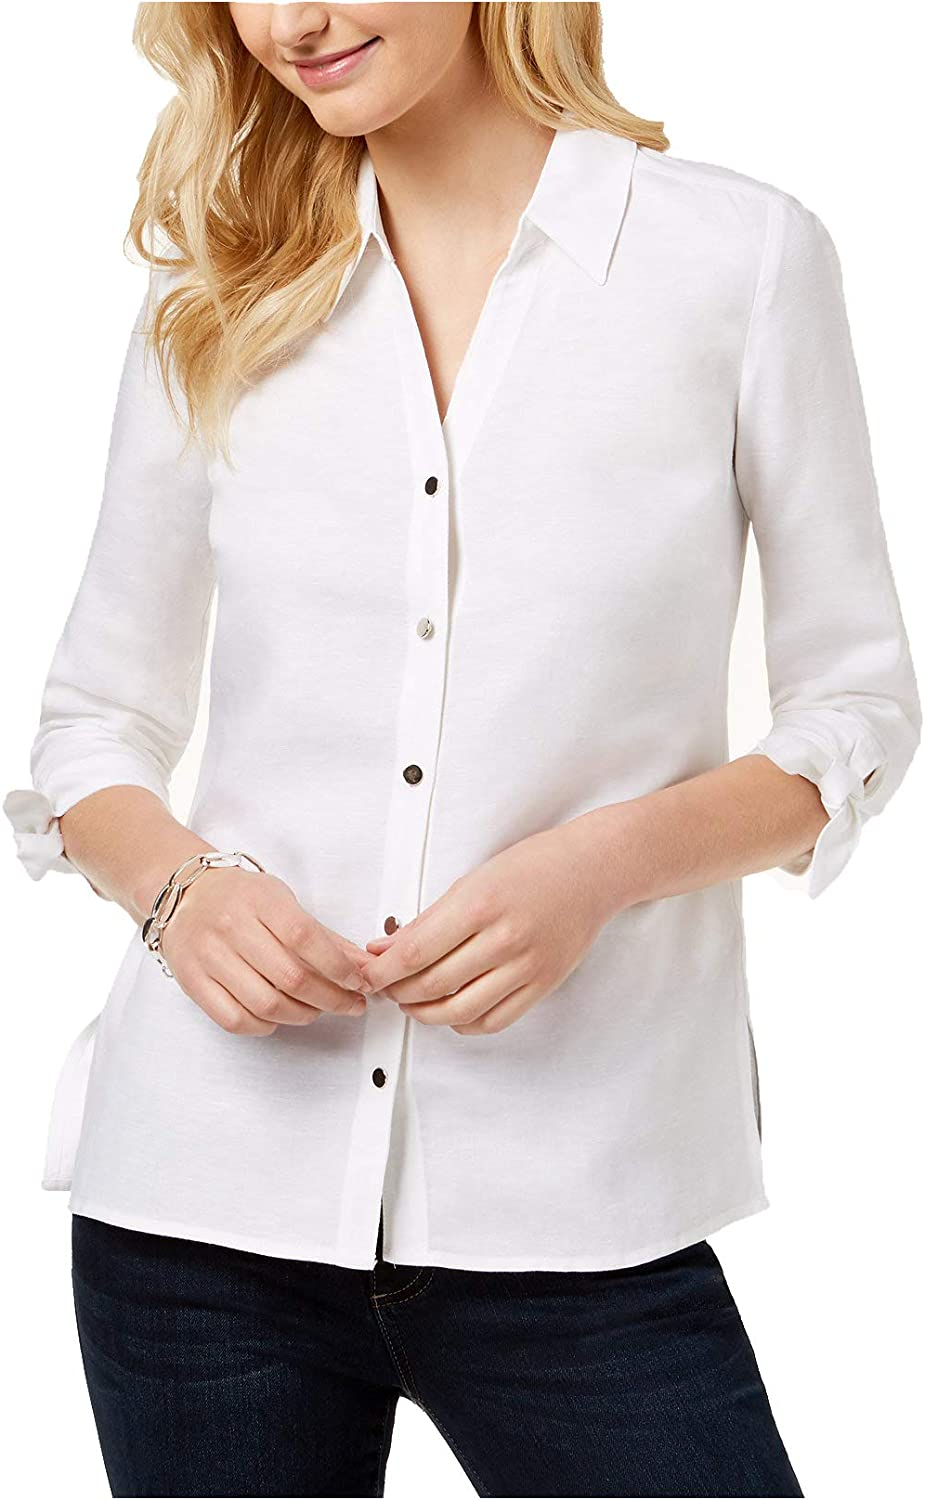 JM Collection Women's TieSleeve Shirt